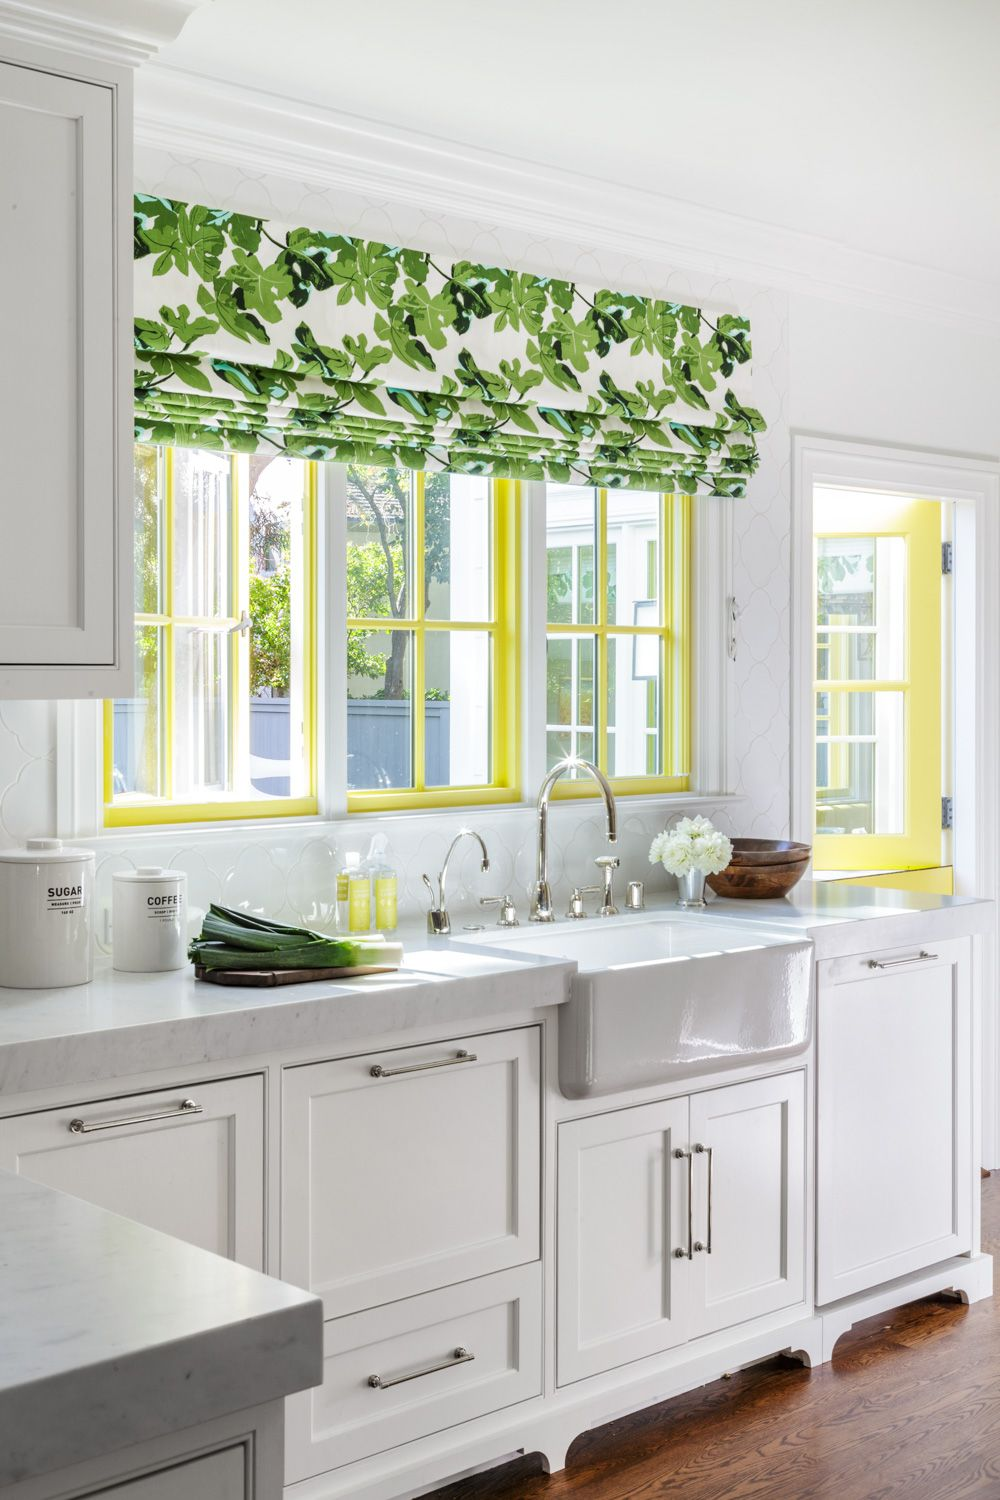 white kitchen with yellow accents ann lowengart interiors with images white kitchen design on kitchen interior yellow and white id=56503